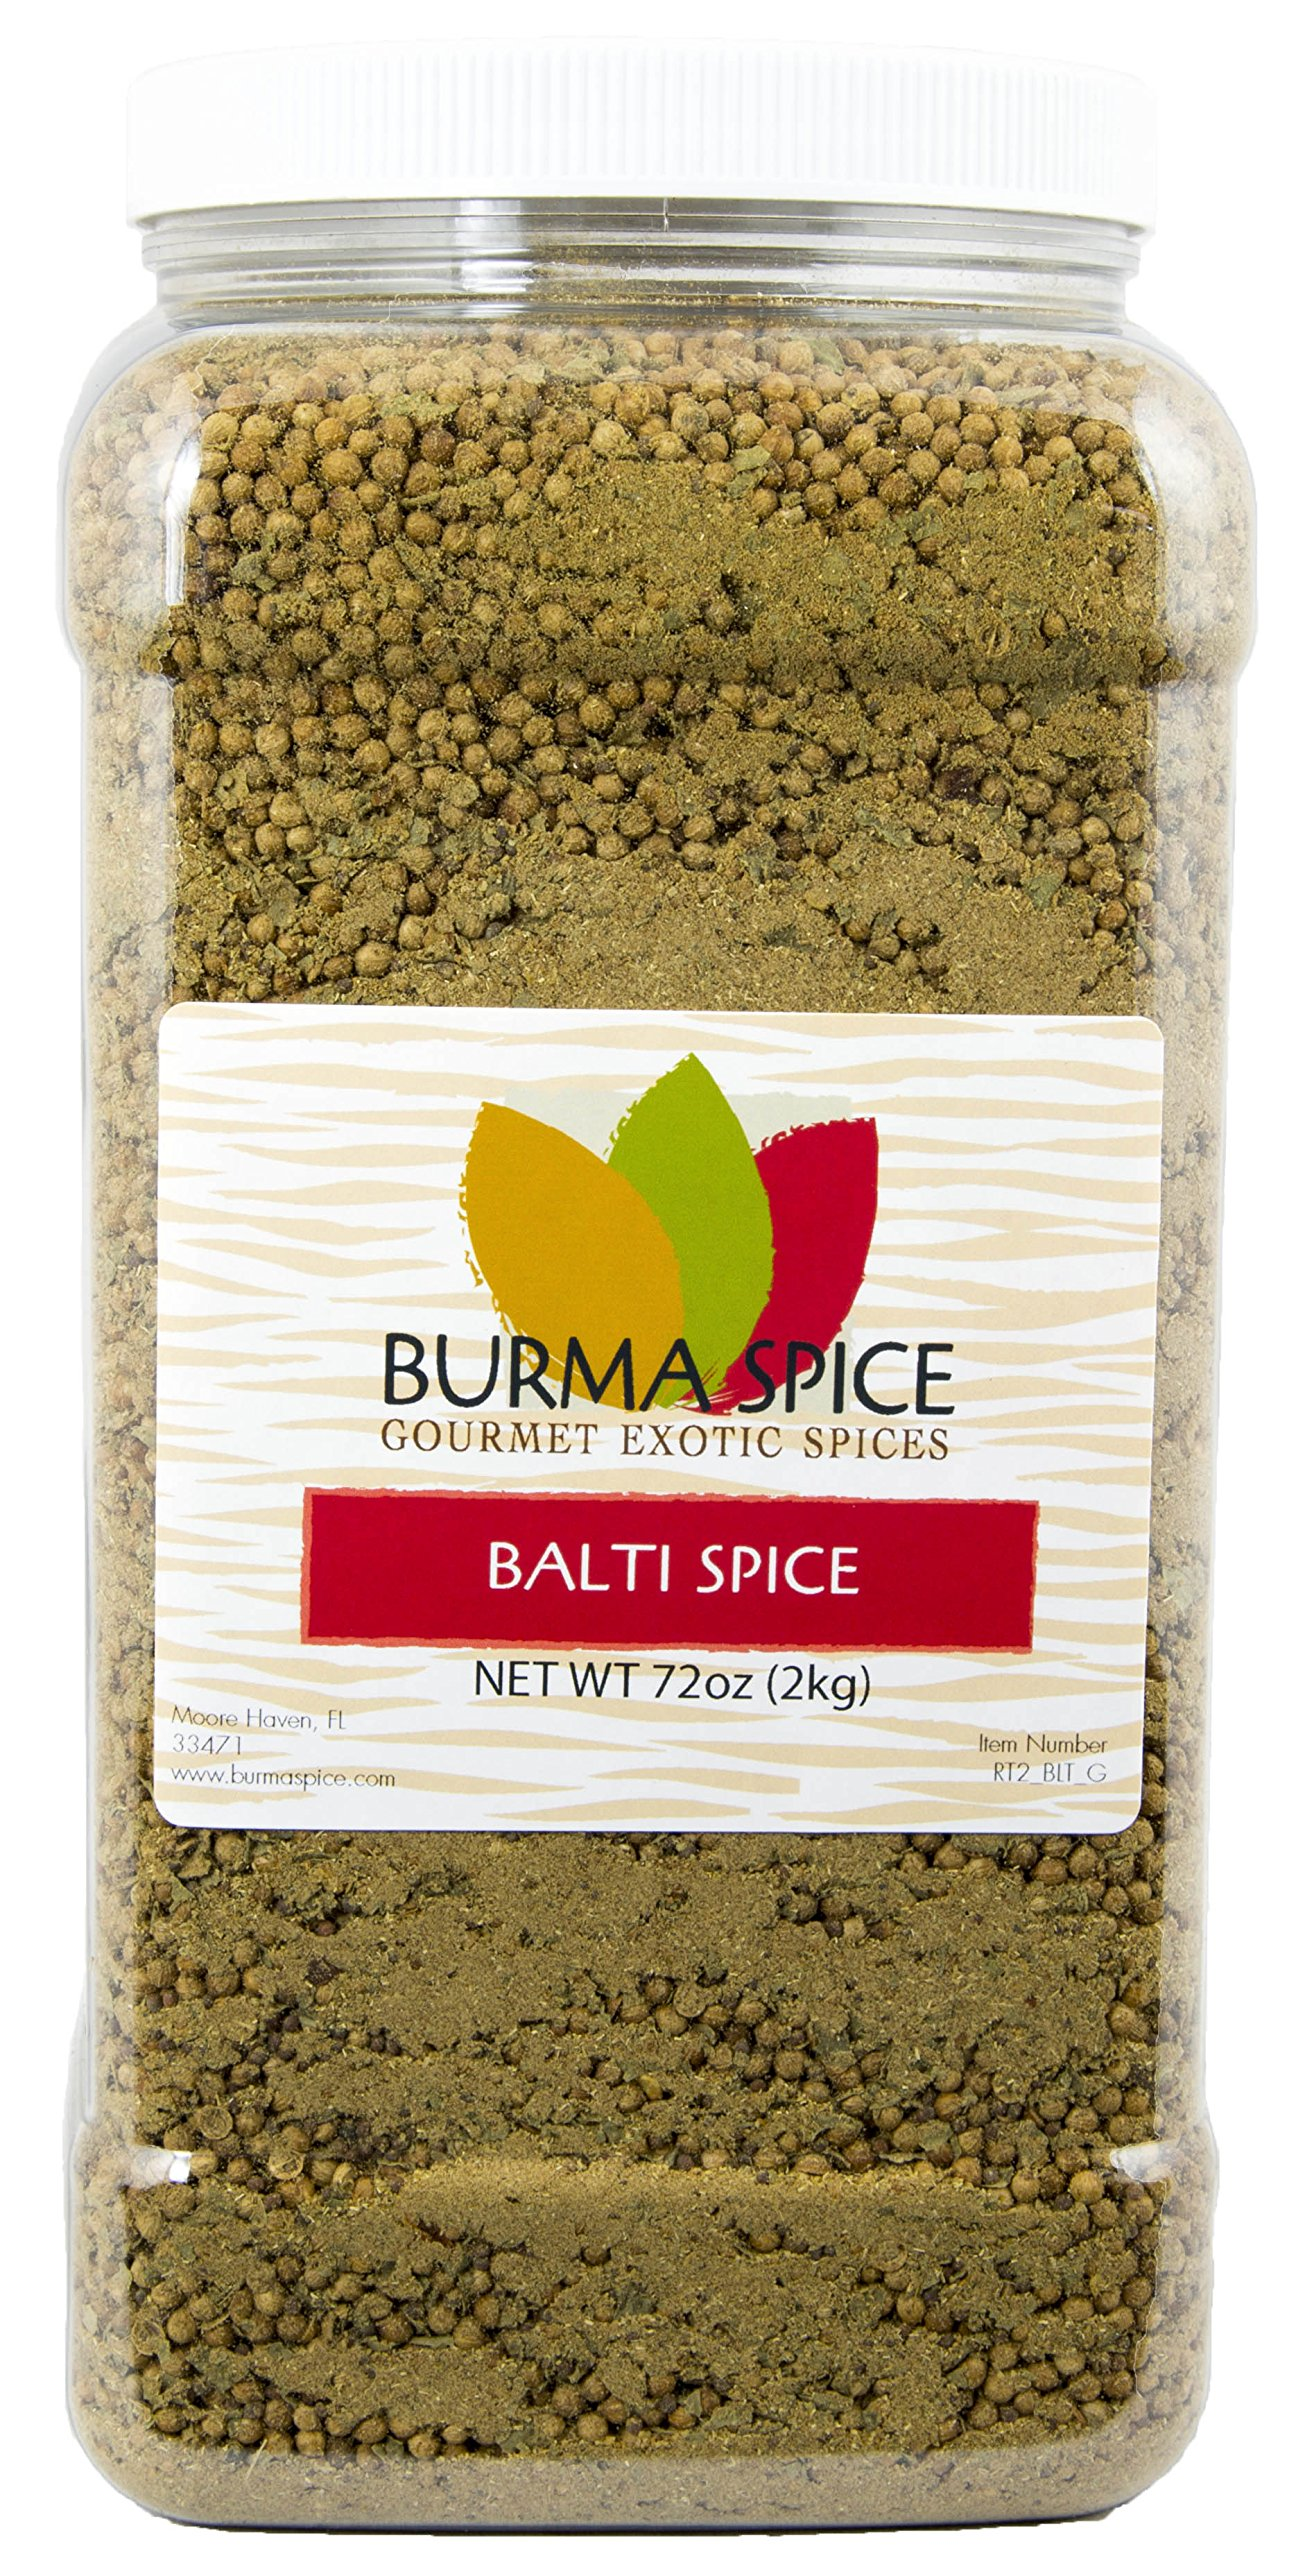 Balti Spice Blend : Used in Kashmiri Cuisine : 16 Spice Mix, Dry Herbs, No additives (72oz.)